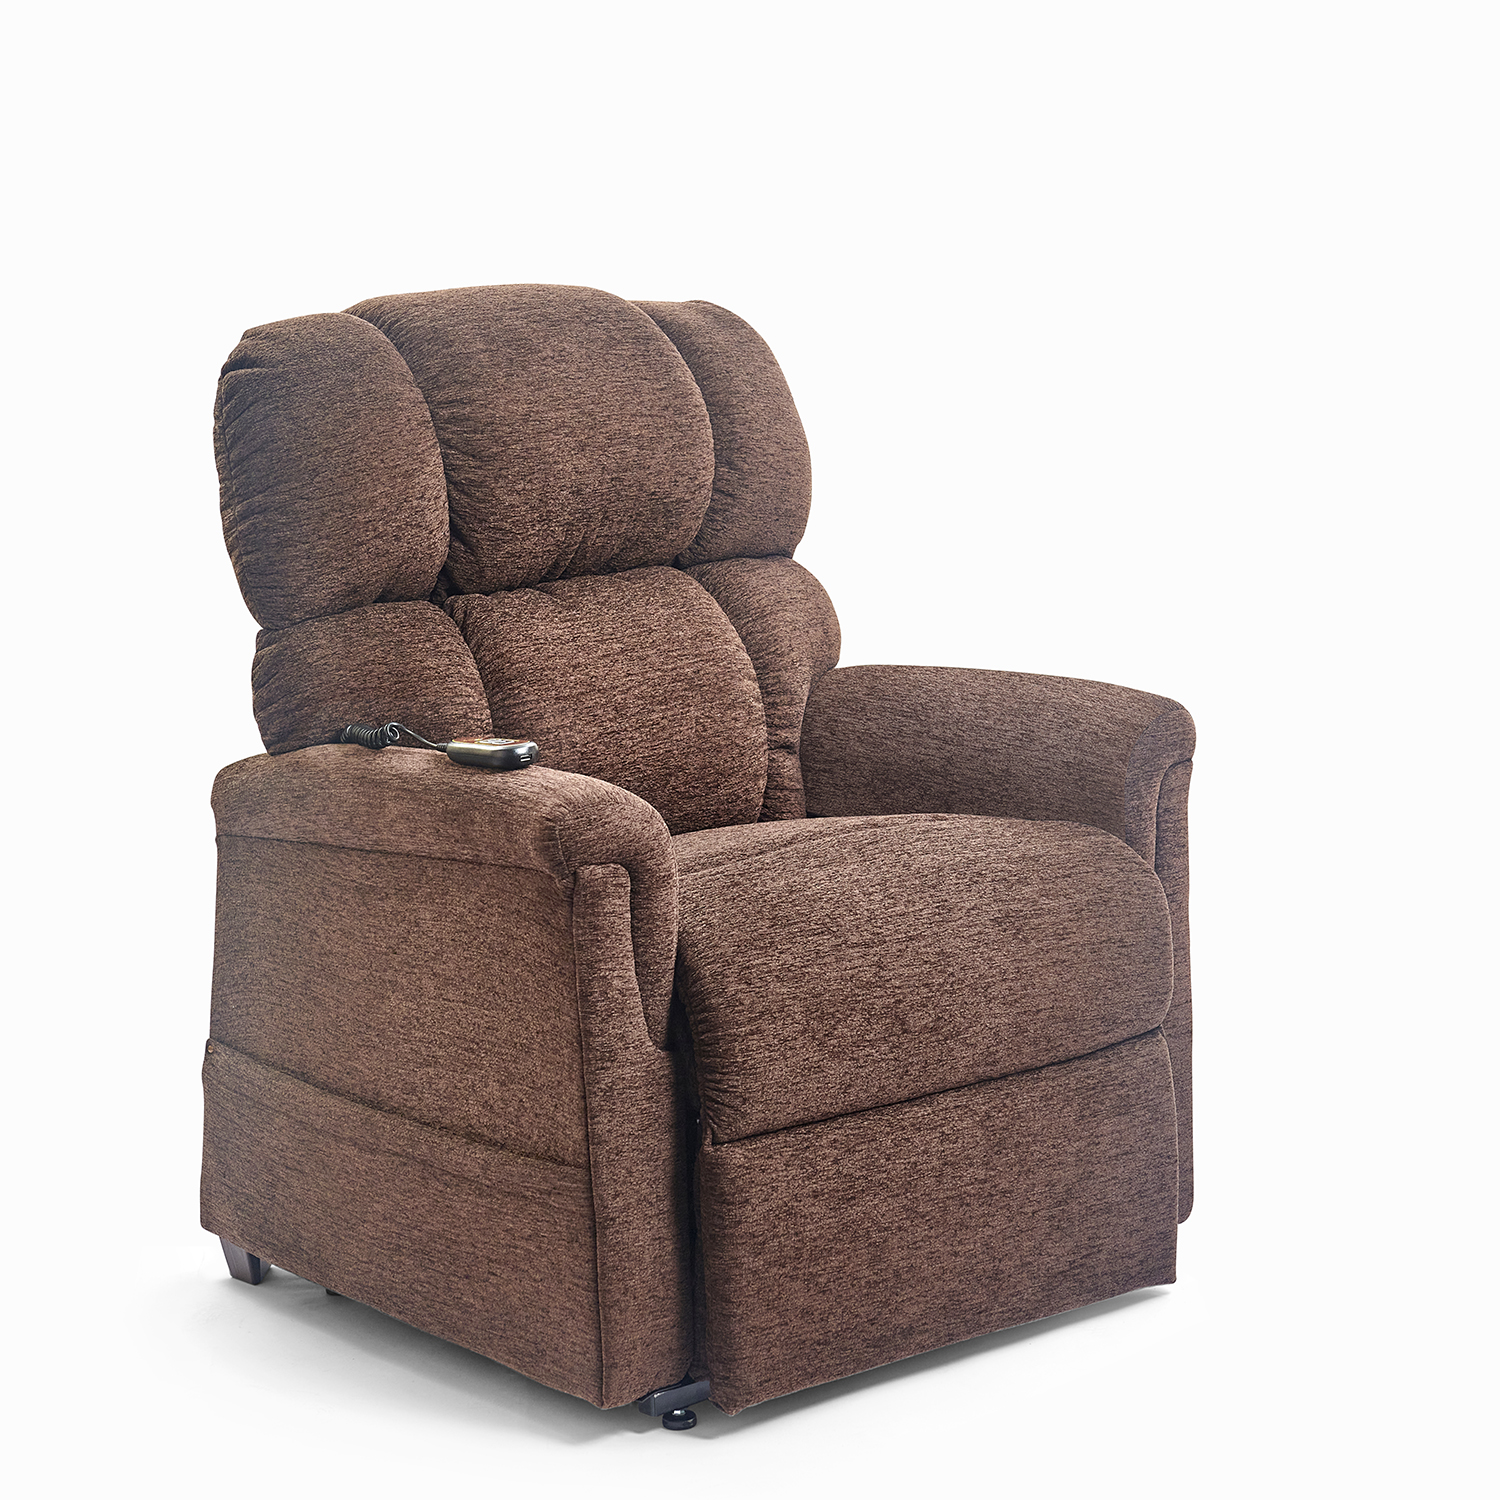 Extra Wide Lift Chairs